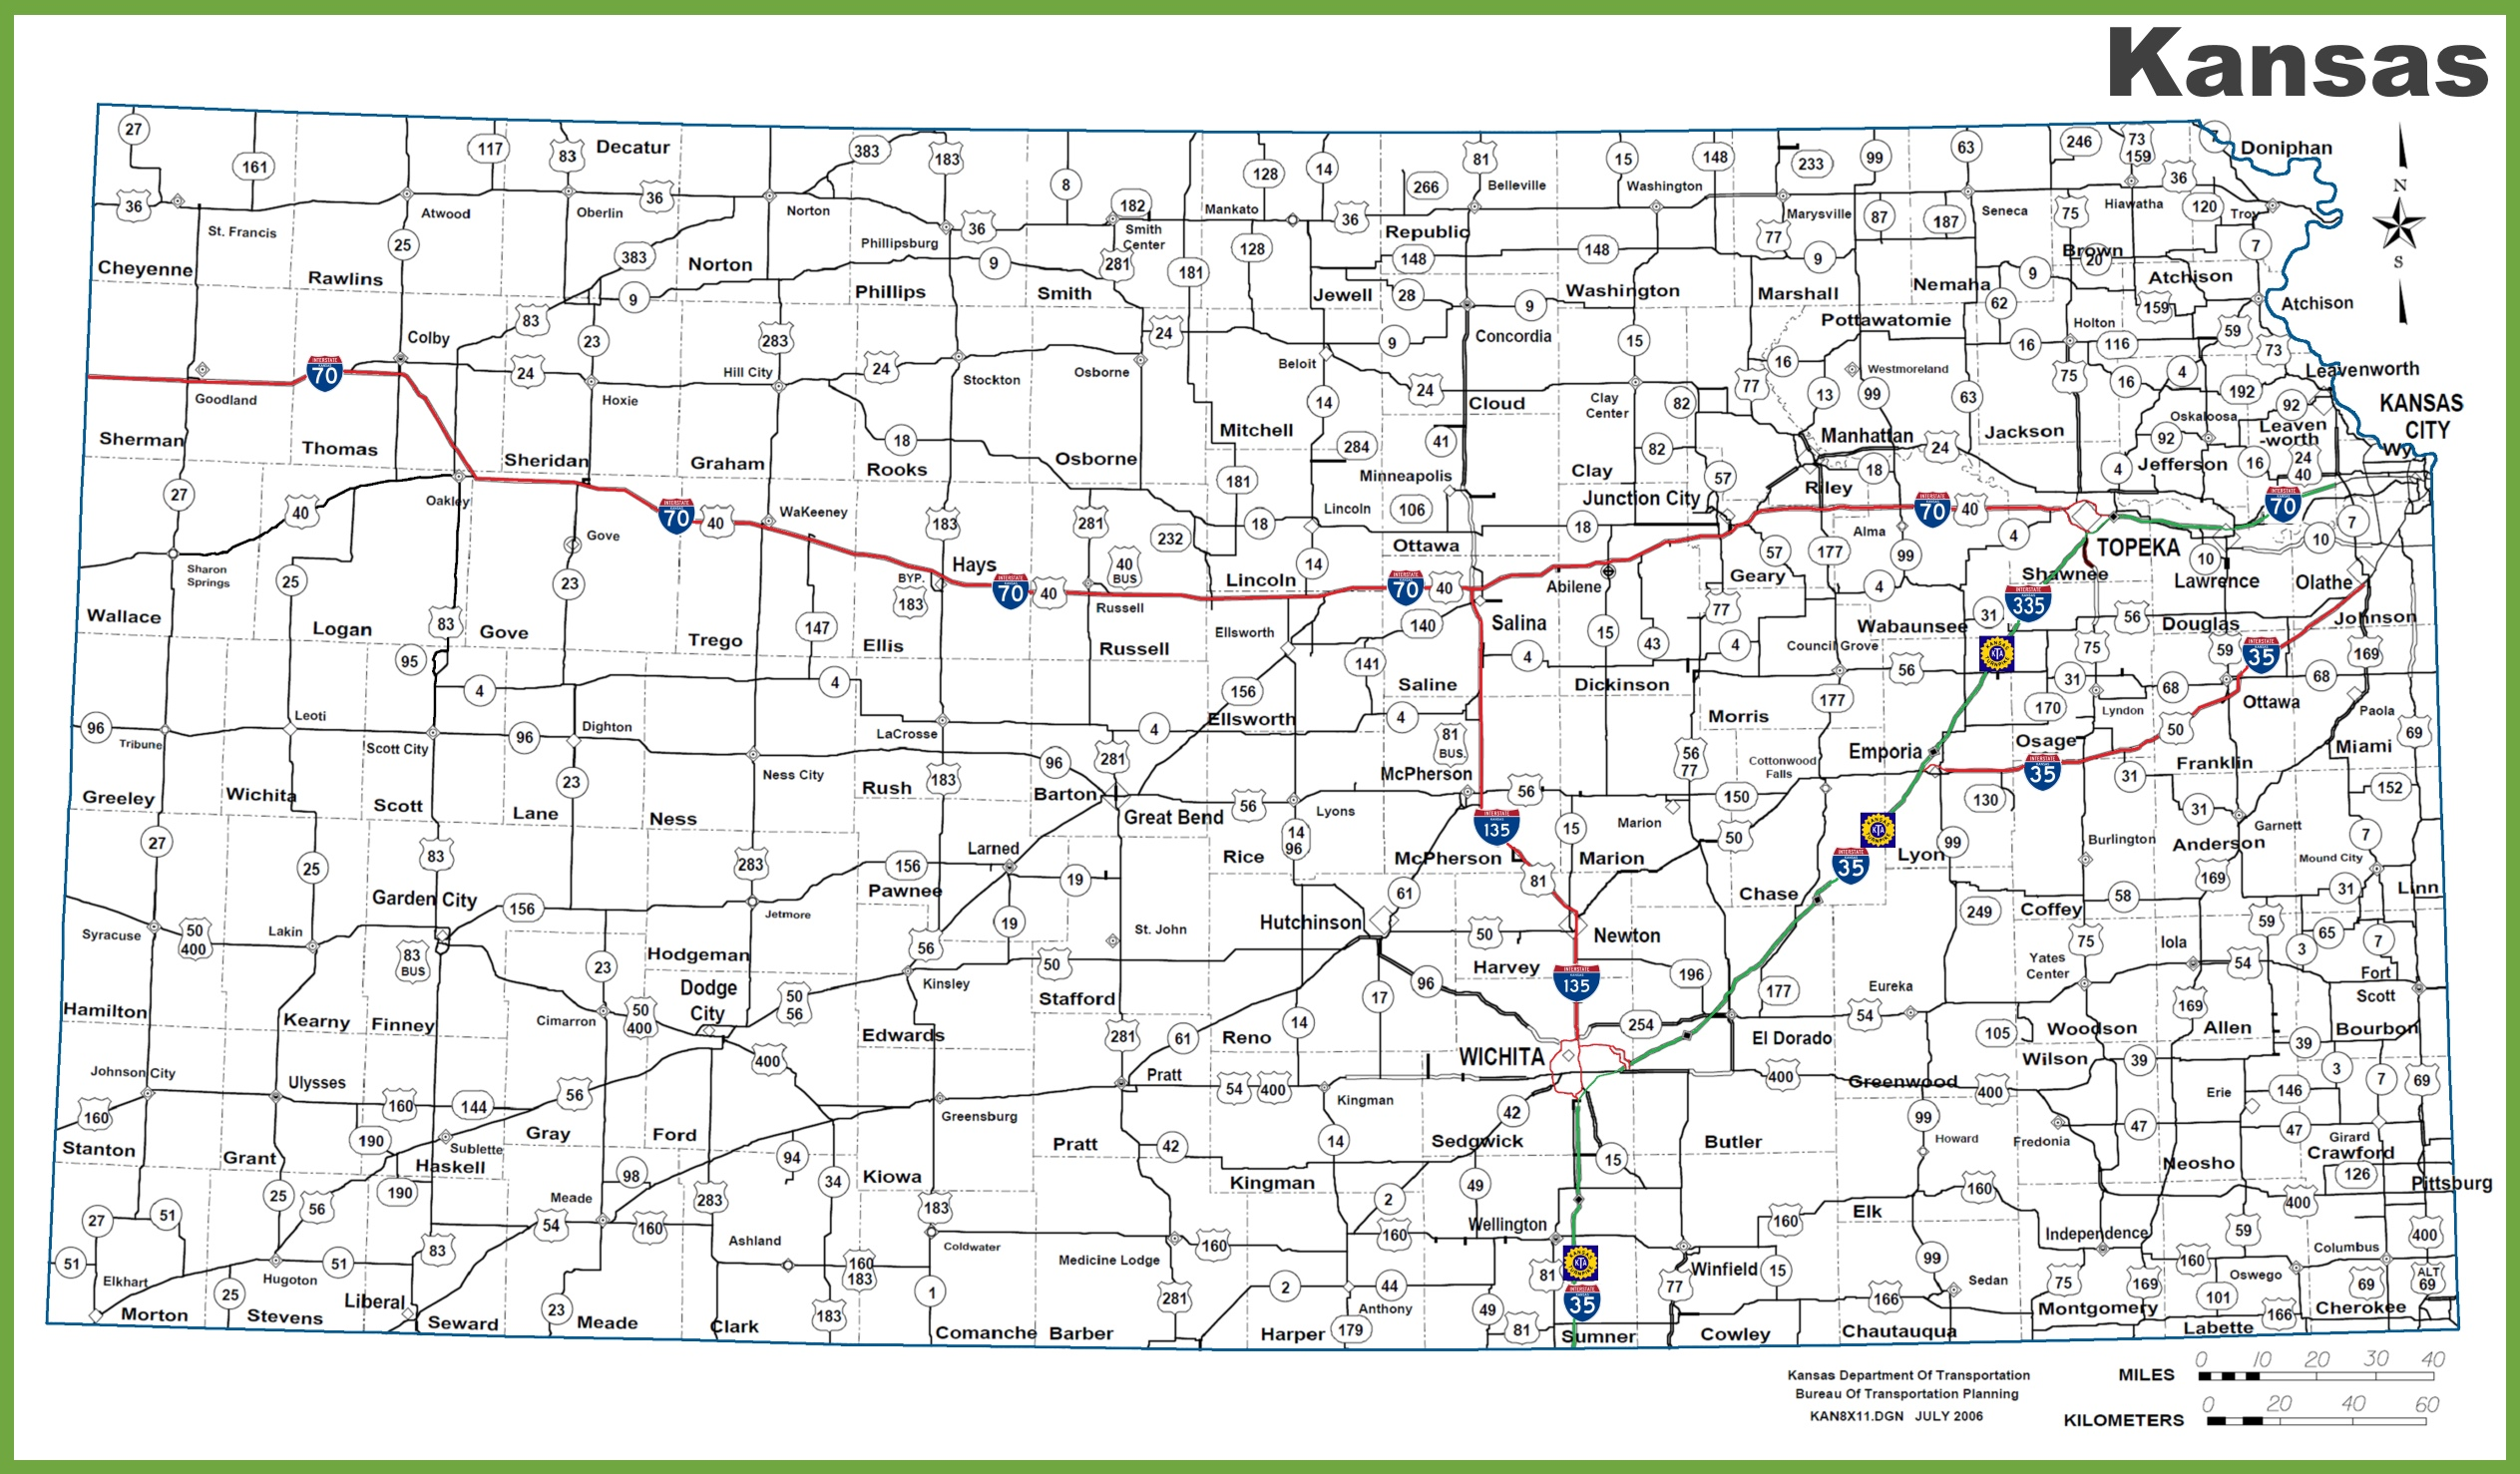 Kansas Road Map - Kansas us map